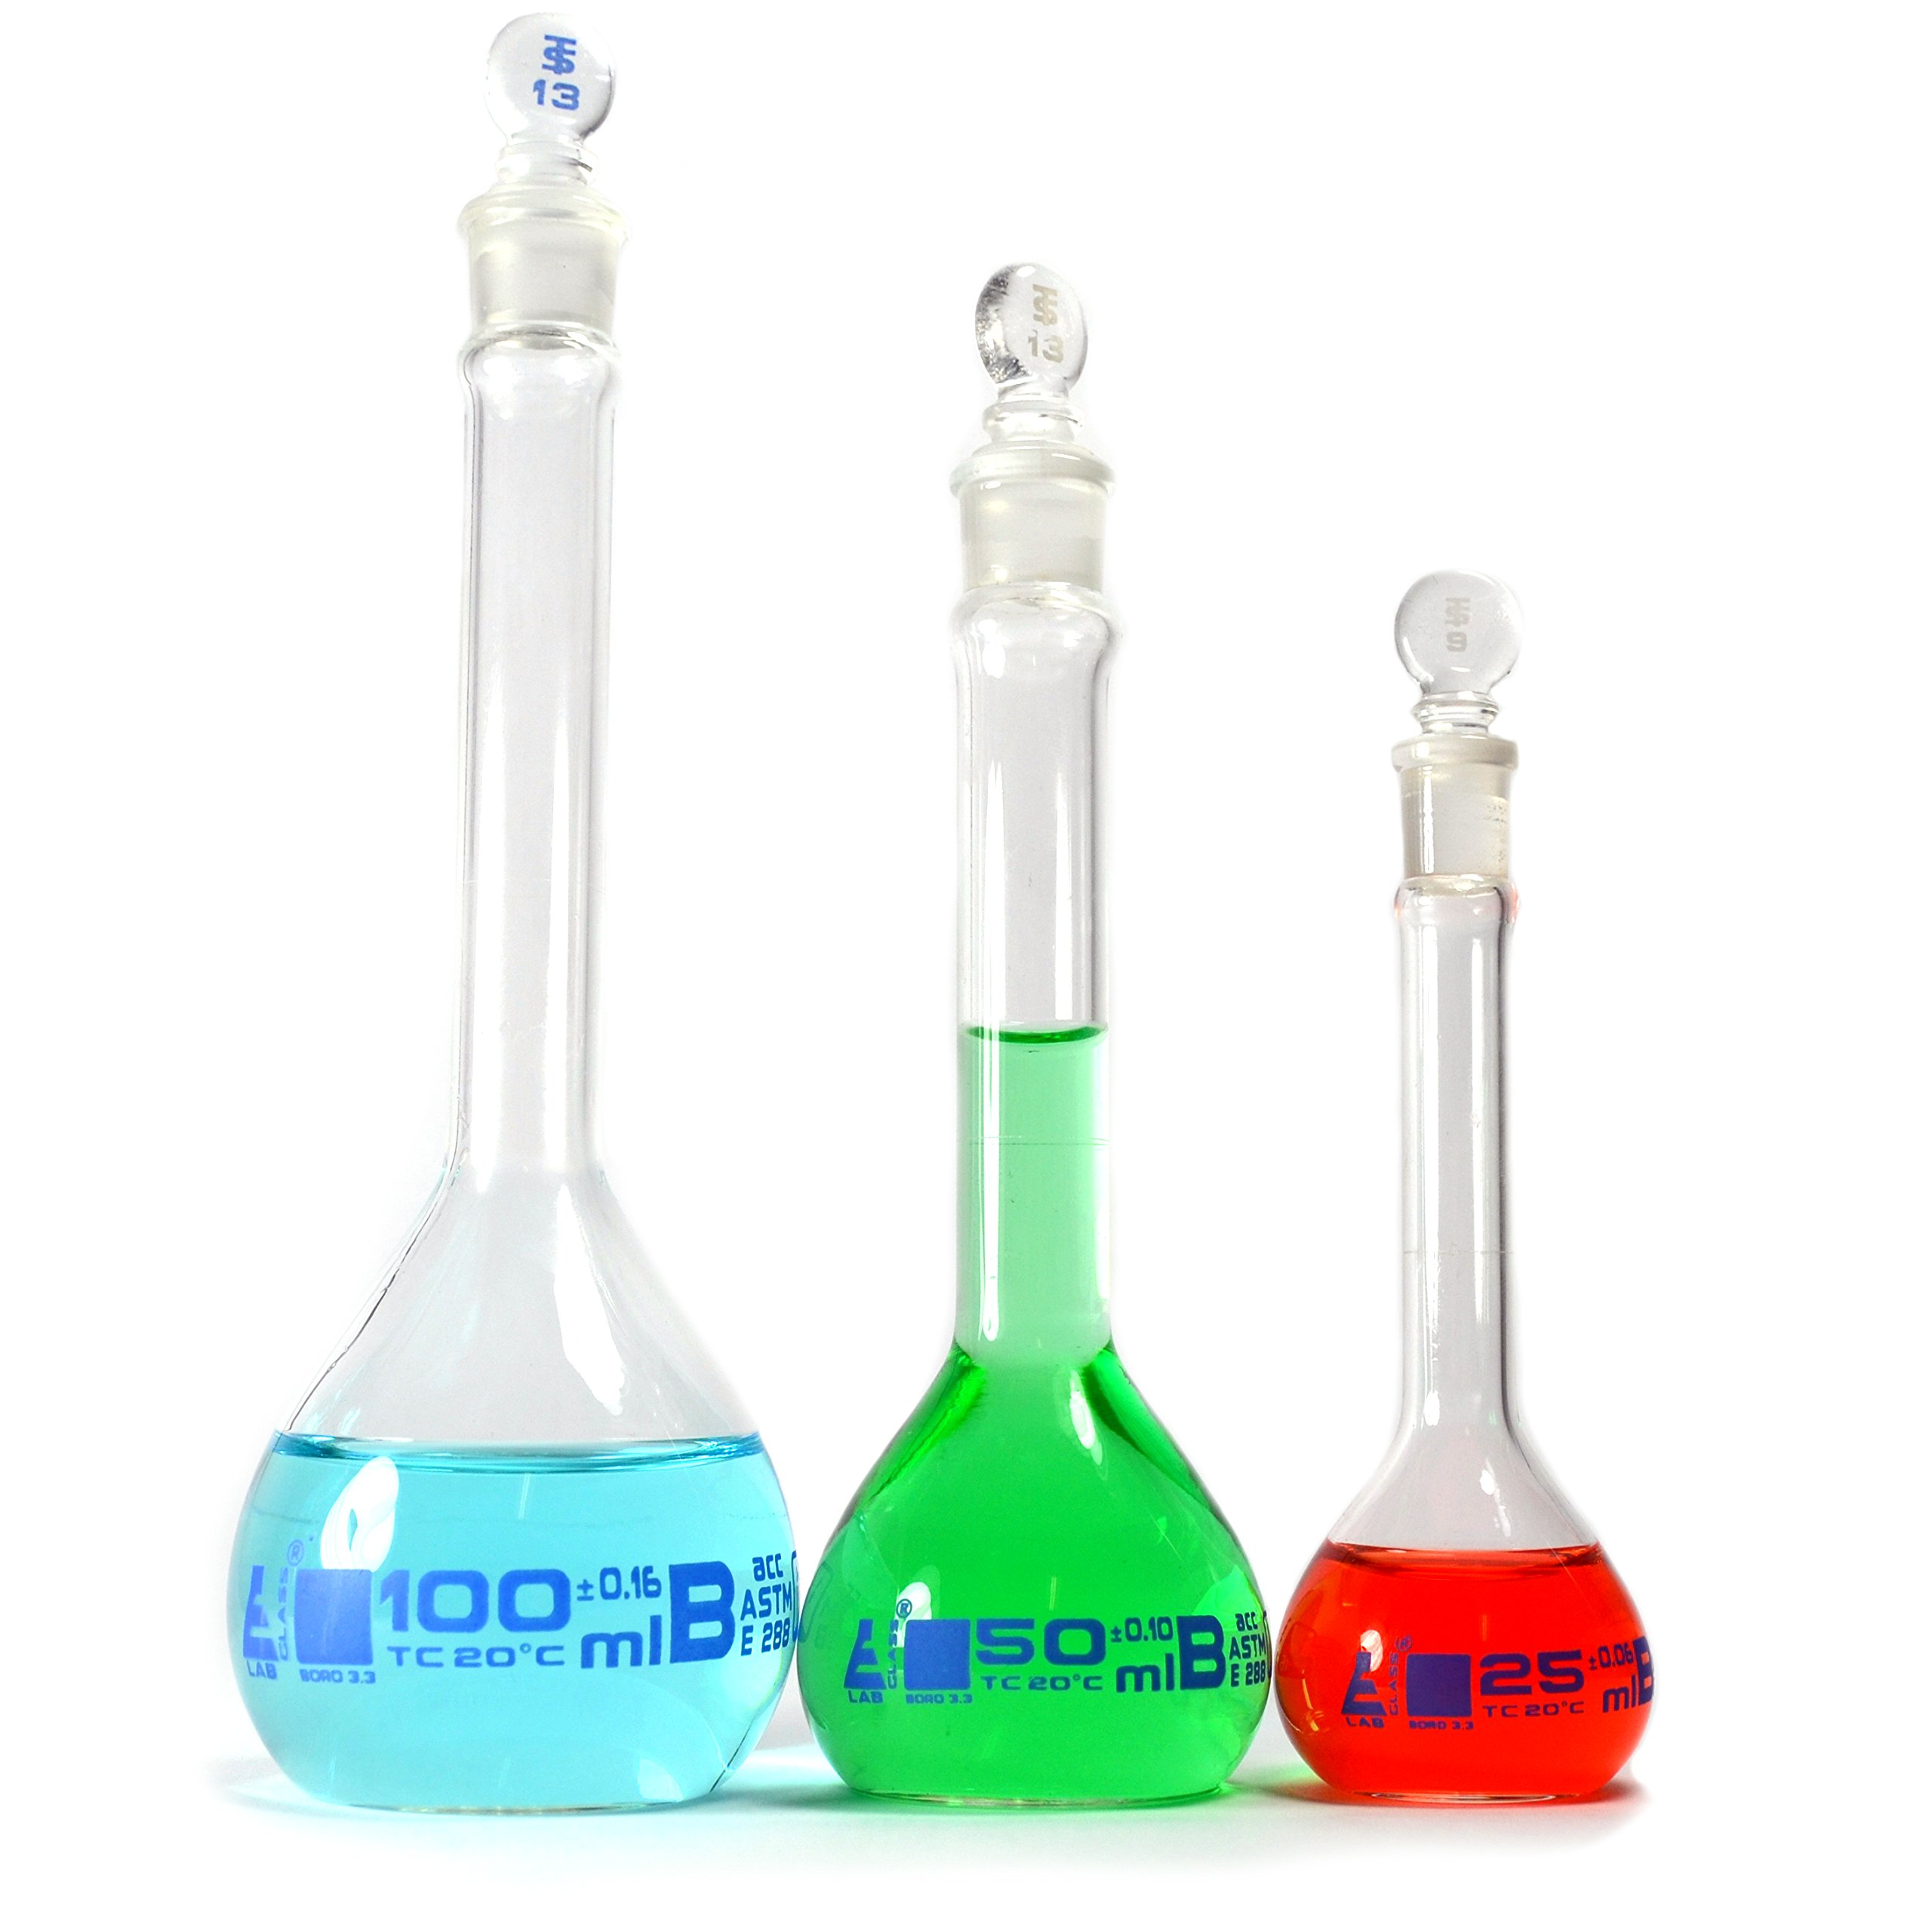 Volumetric Flask Set, 3 Pieces - Class B, ASTM - 25ml, 50ml & 100ml - Glass Stopper - Blue Graduation - Eisco Labs by EISCO